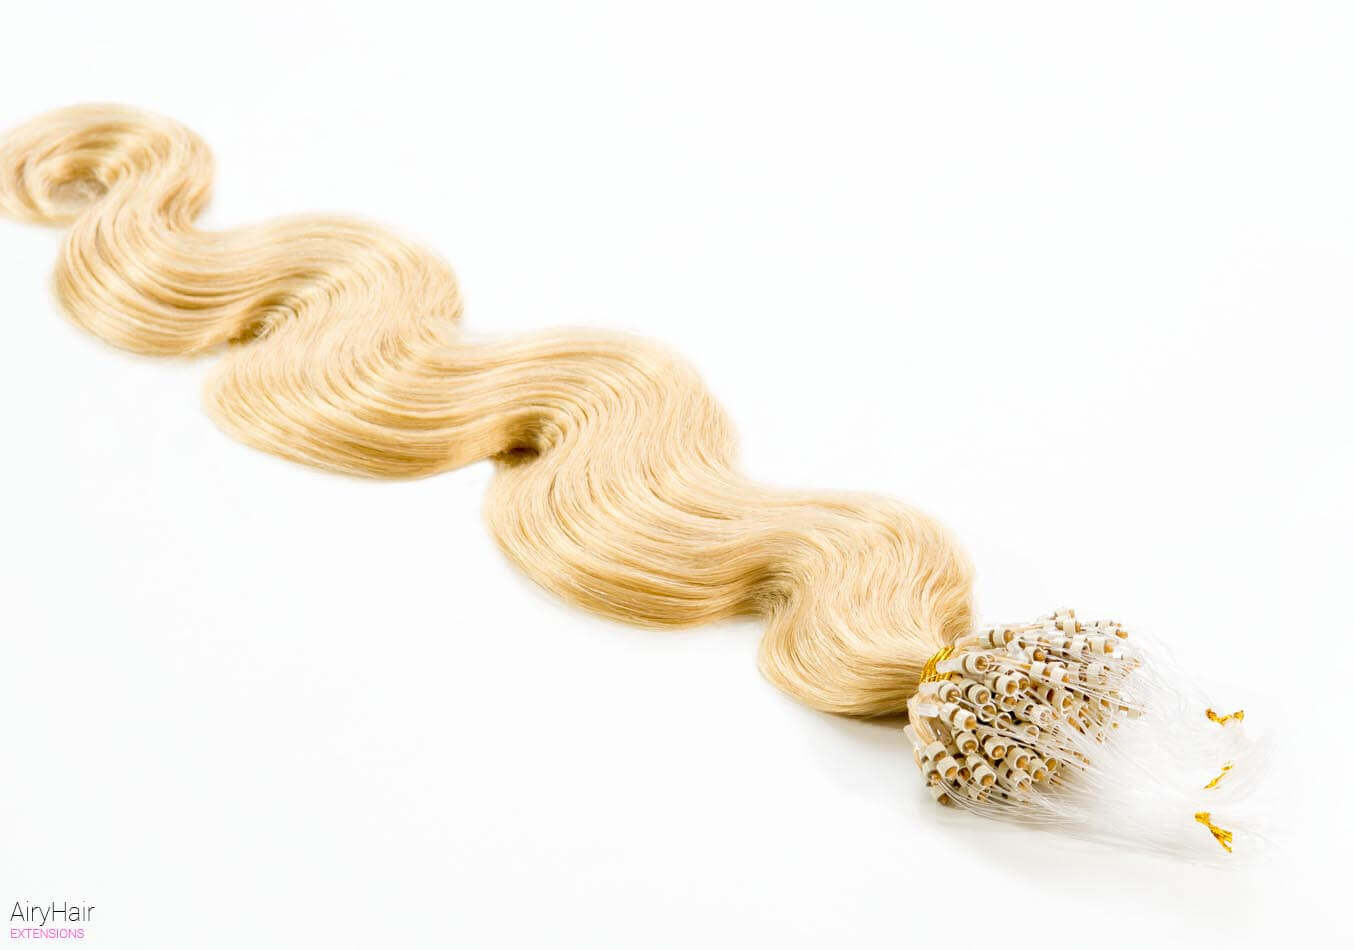 Cheap micro loop extensions for sale airyhair pmusecretfo Images